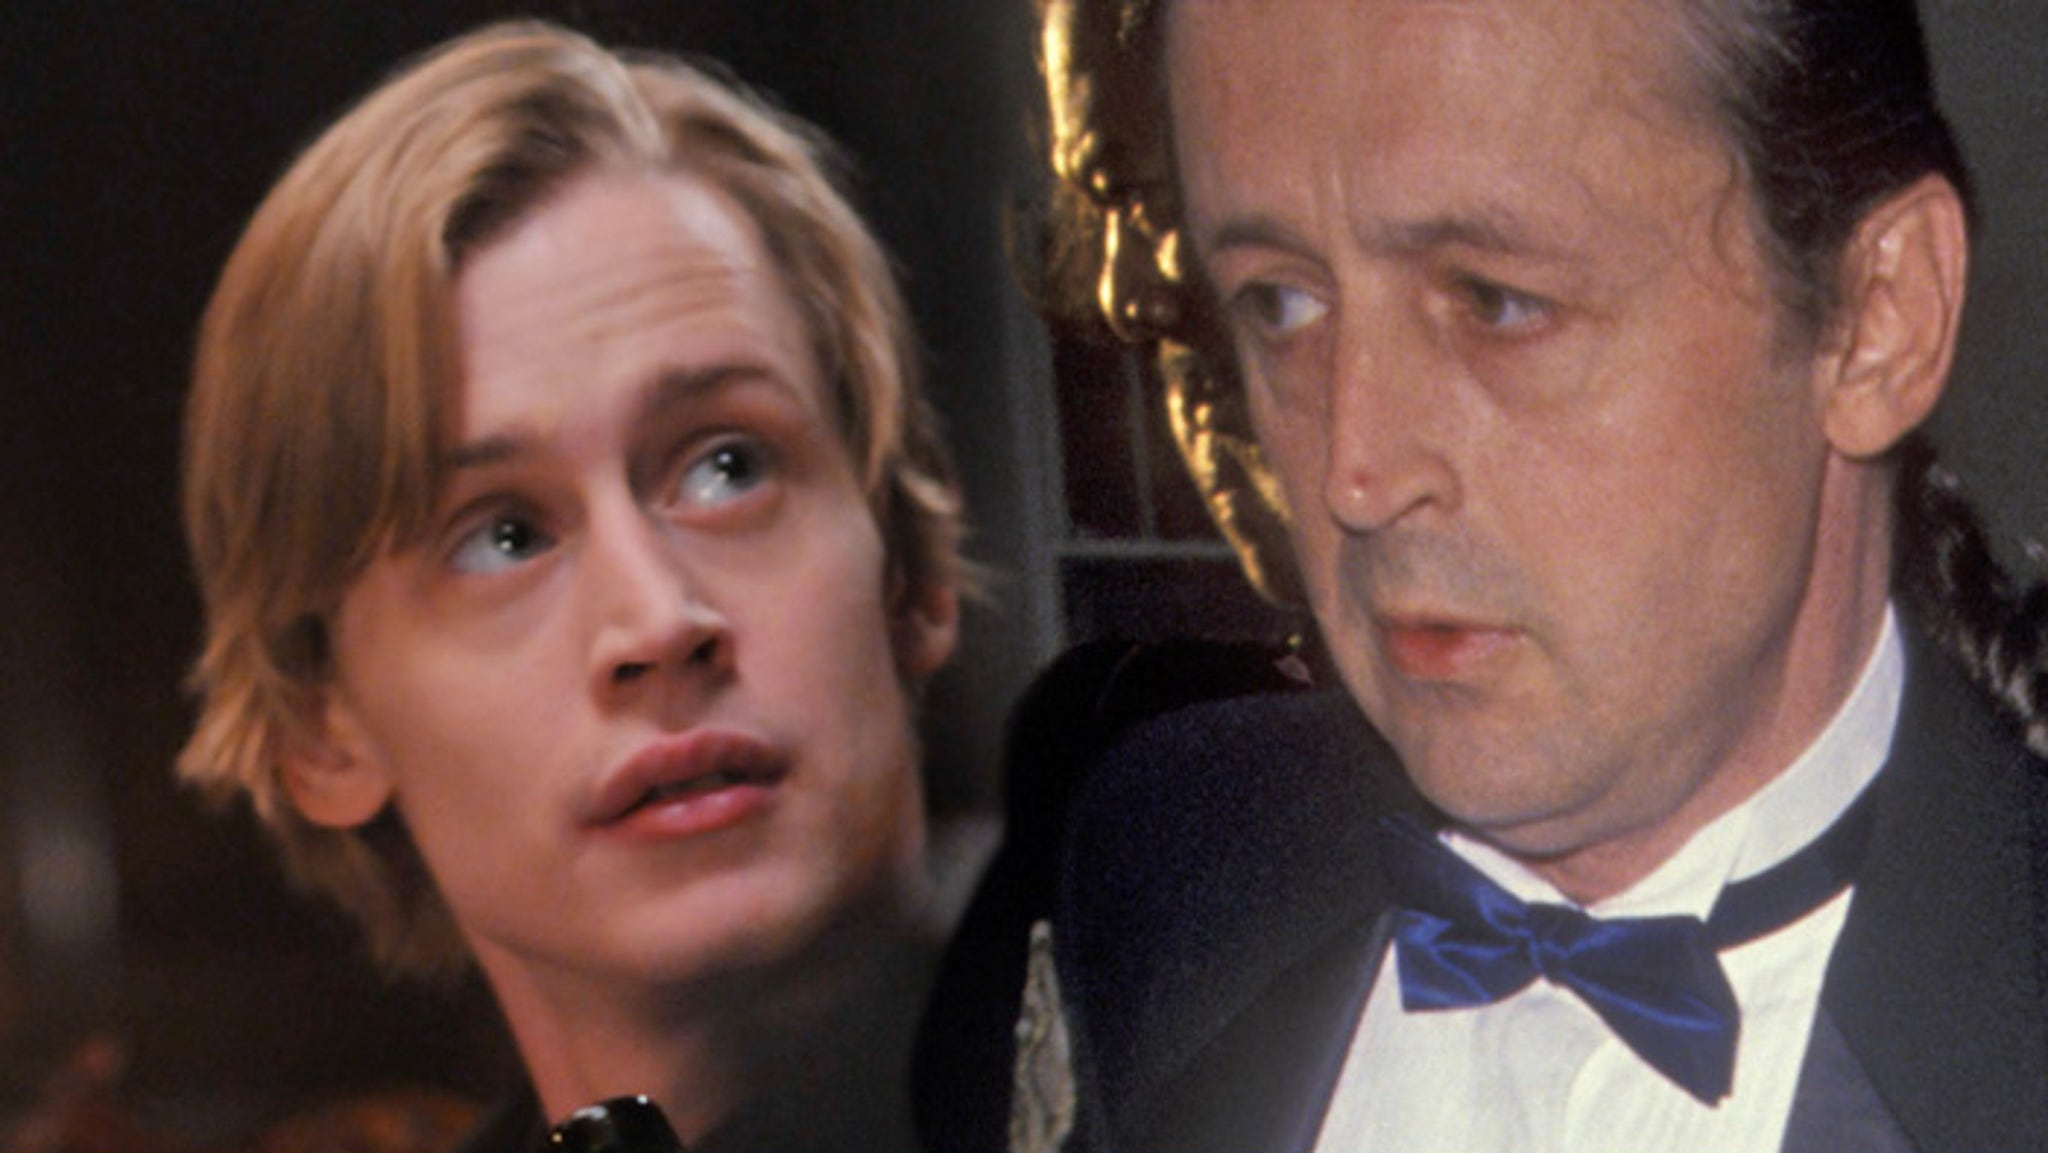 Macaulay Culkin -- Dad Wanted to Patch Things Up Before Stroke